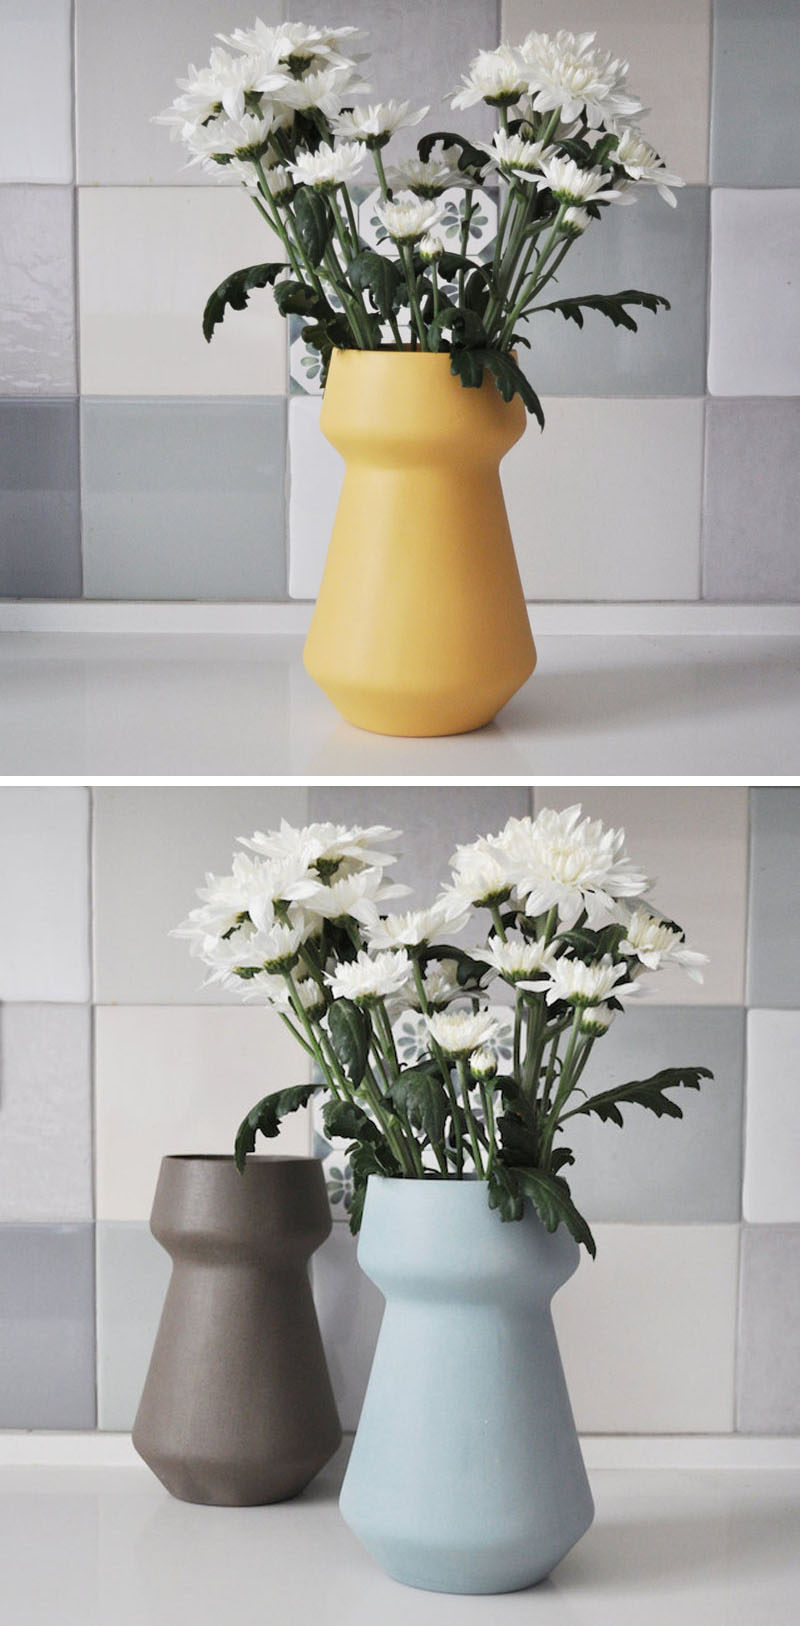 Inspired by mid-century design, these vases have a simple minimalist design, come in a range of pastel colors, and would suit any spring decor theme.